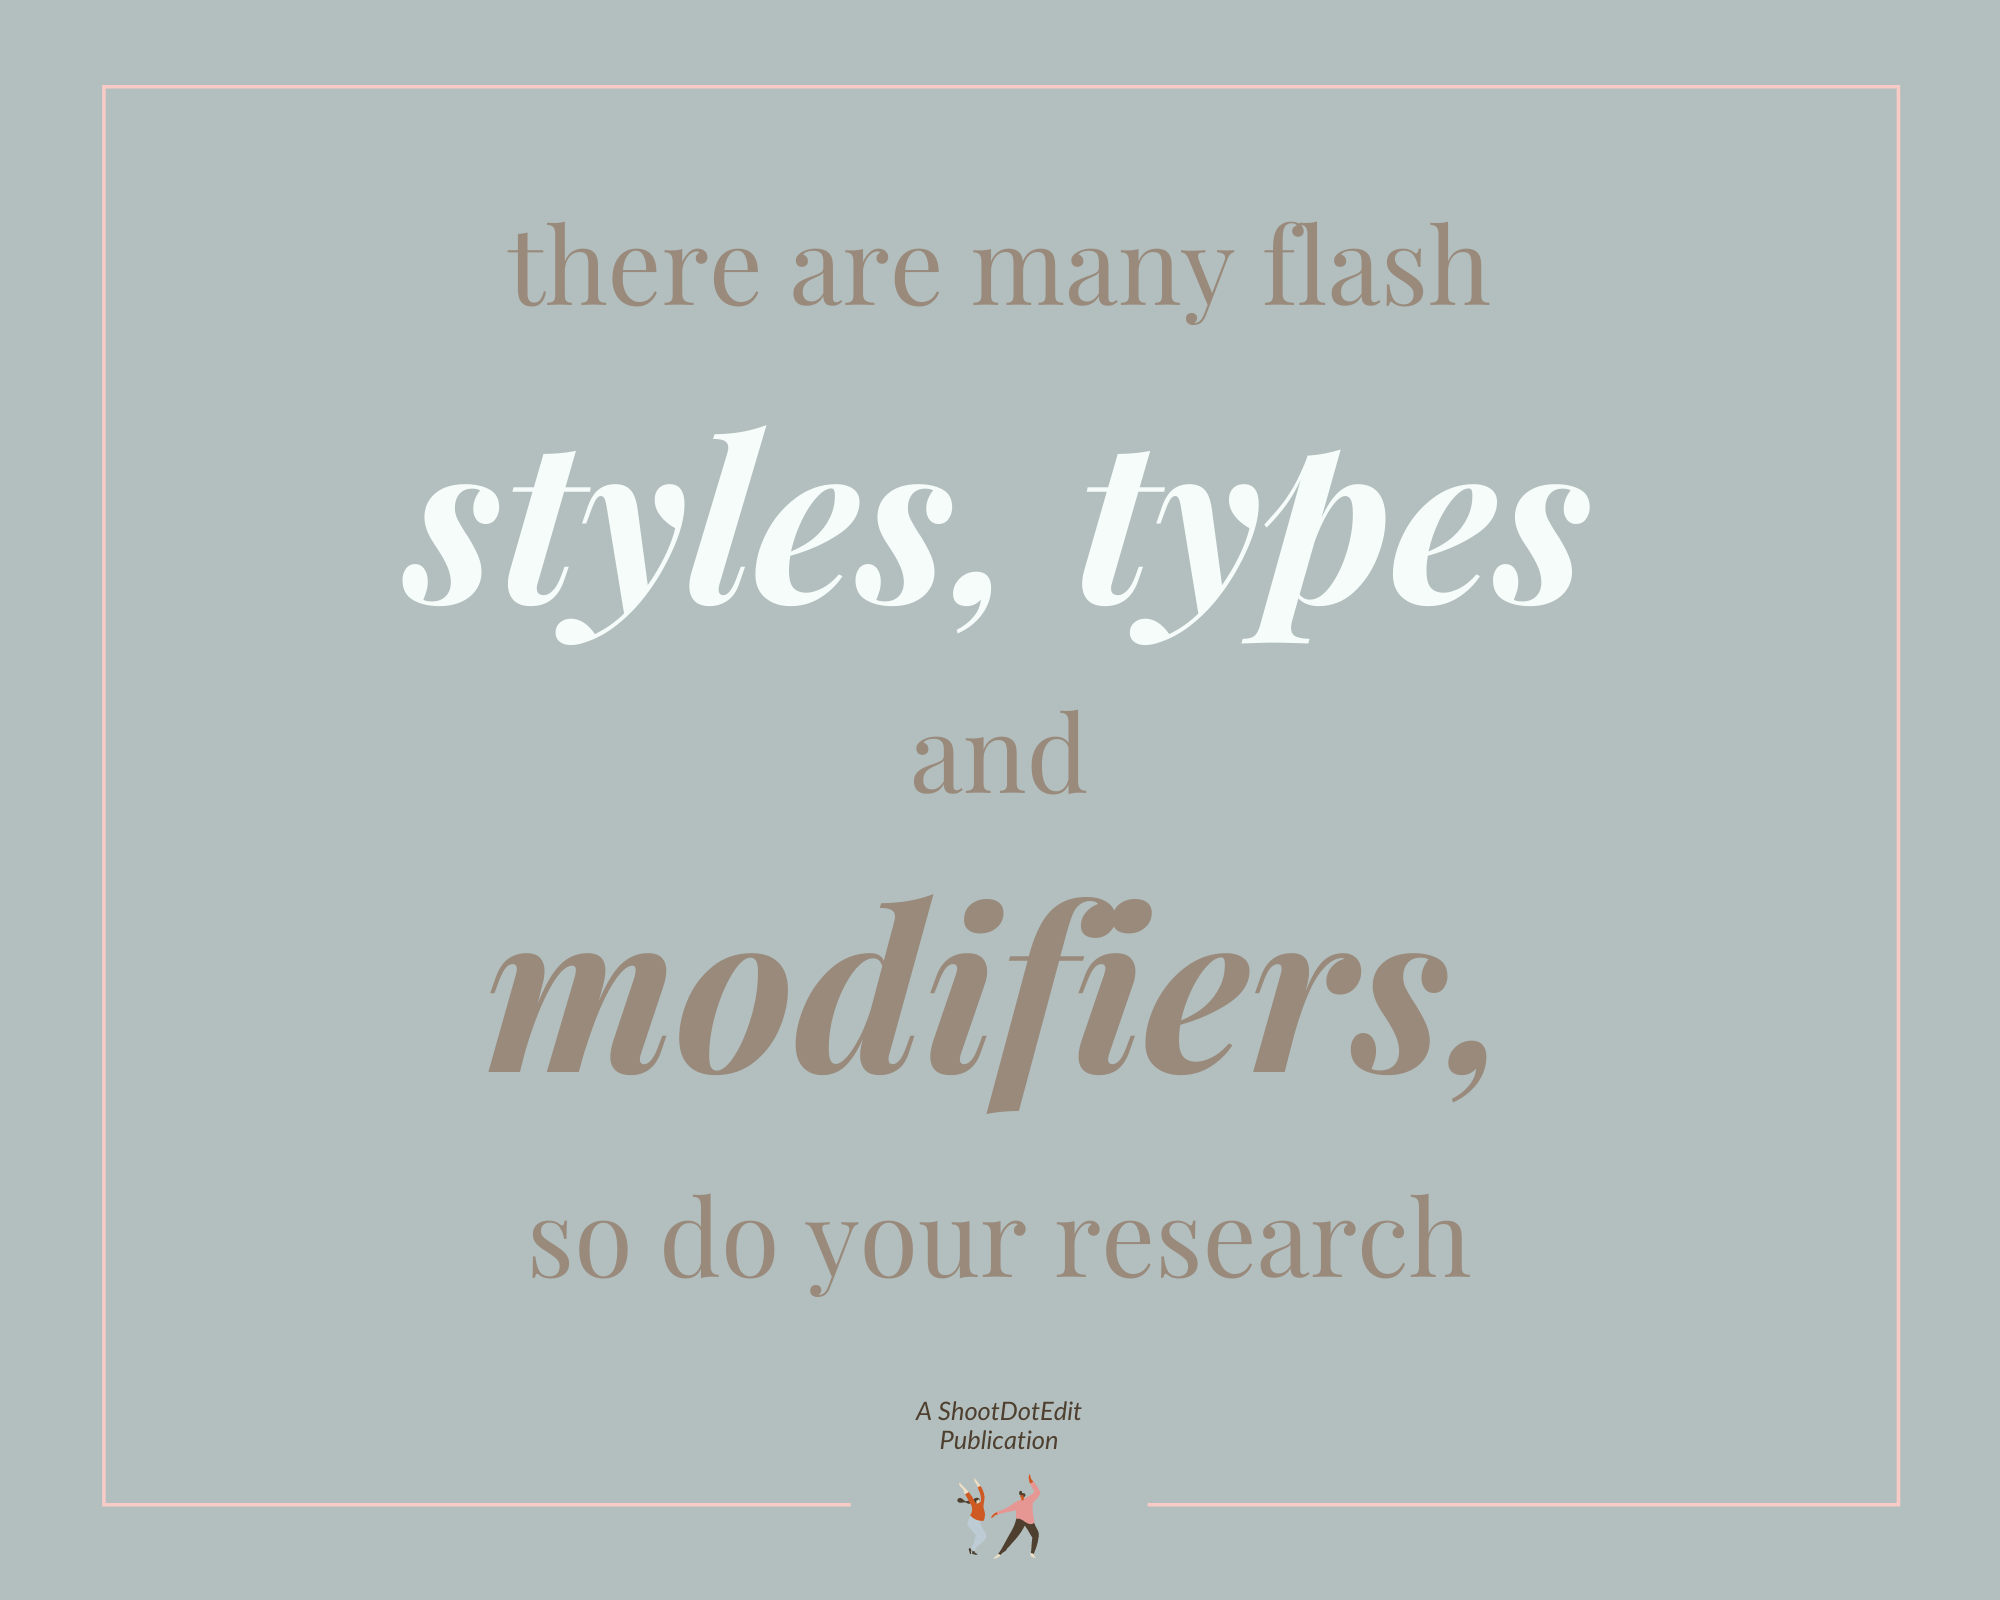 Infographic stating there are many flash styles, types and modifiers, so do your research